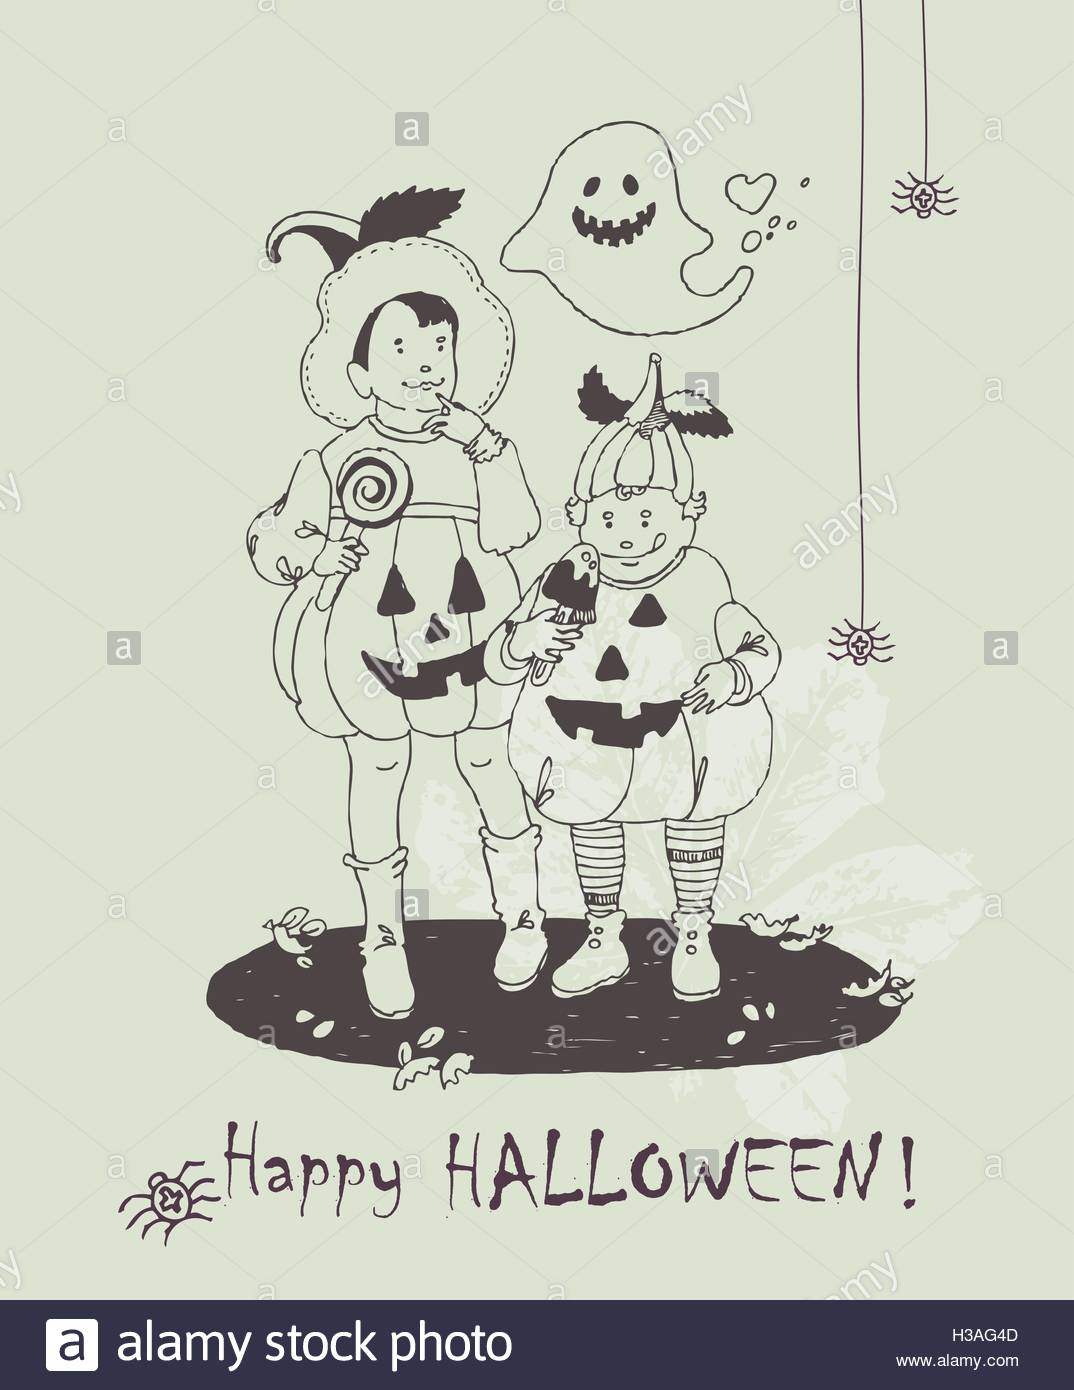 1074x1390 Halloween Greeting Card. Hand Drawn Halloween Poster With Cute